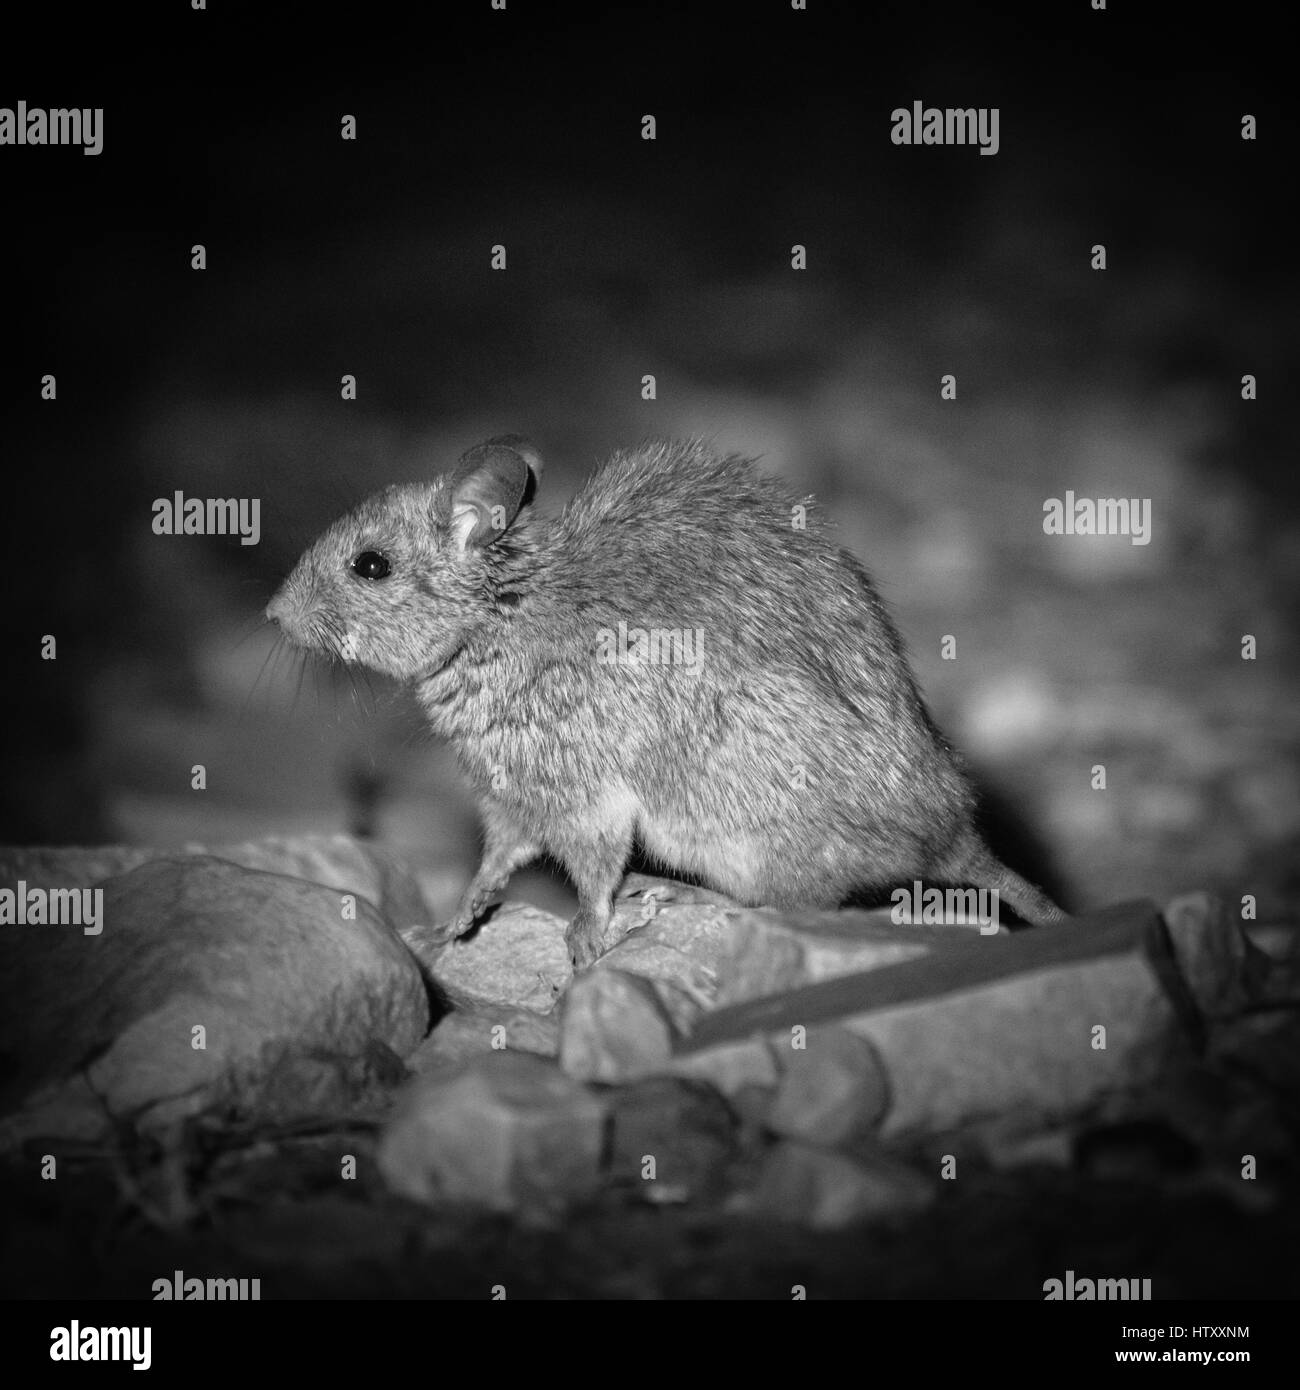 Greater Stick-nest Rat (Leporillus conditor) - Stock Image